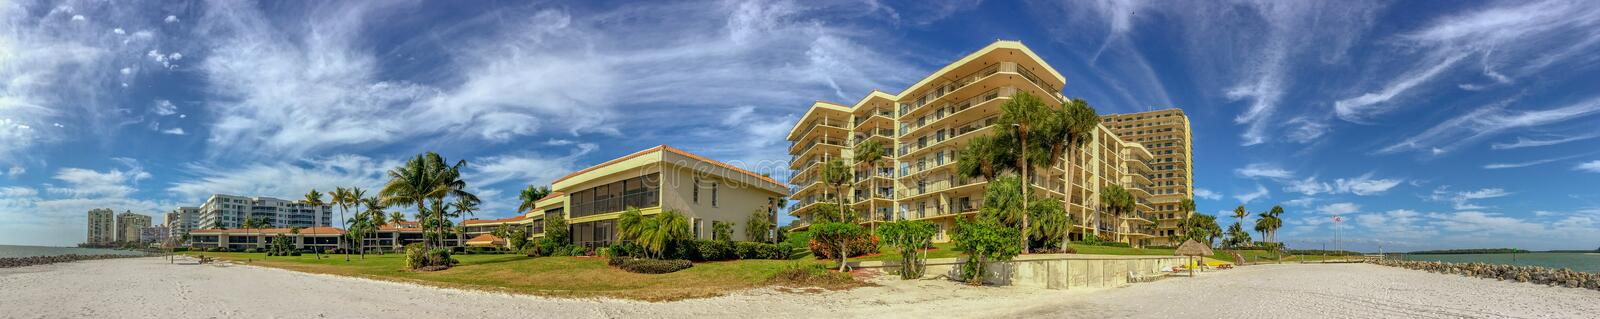 Beautiful beach in Marco Island, panoramic view royalty free stock photos